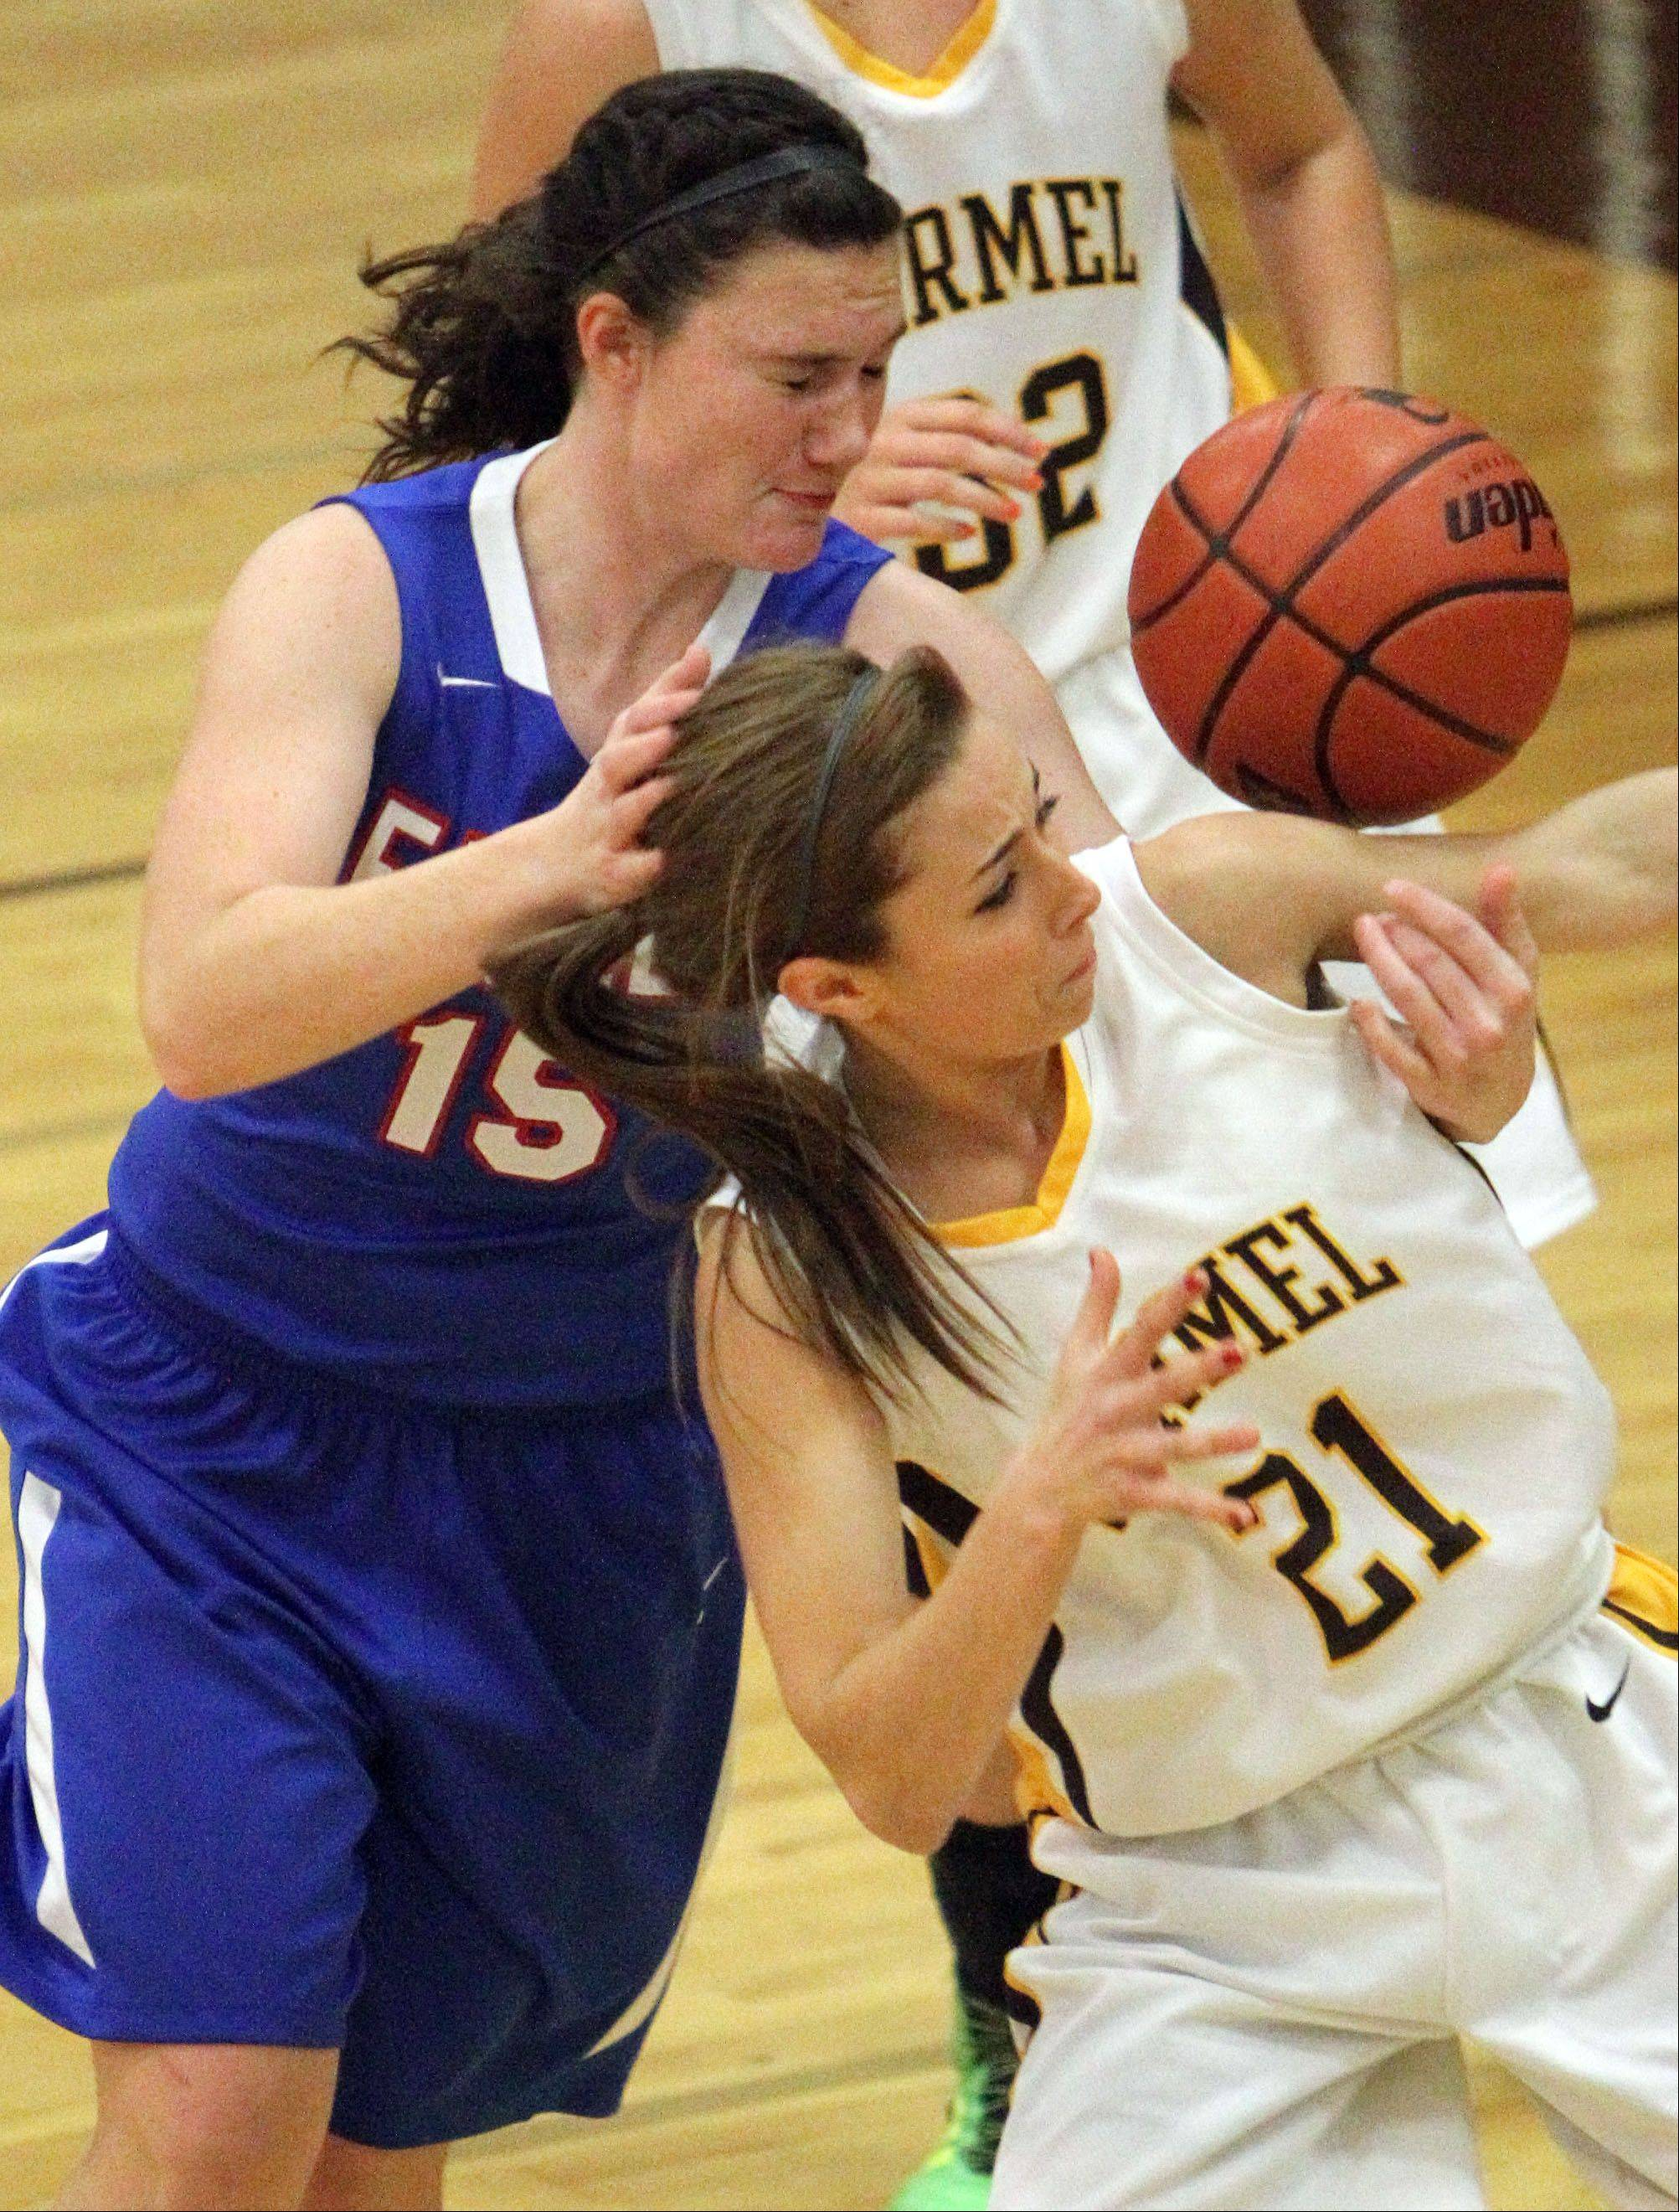 Lakes' Nicole Denman, left, and Carmel's Nicole Bitter eye the loose ball during Monday's basketball game in Mundelein.